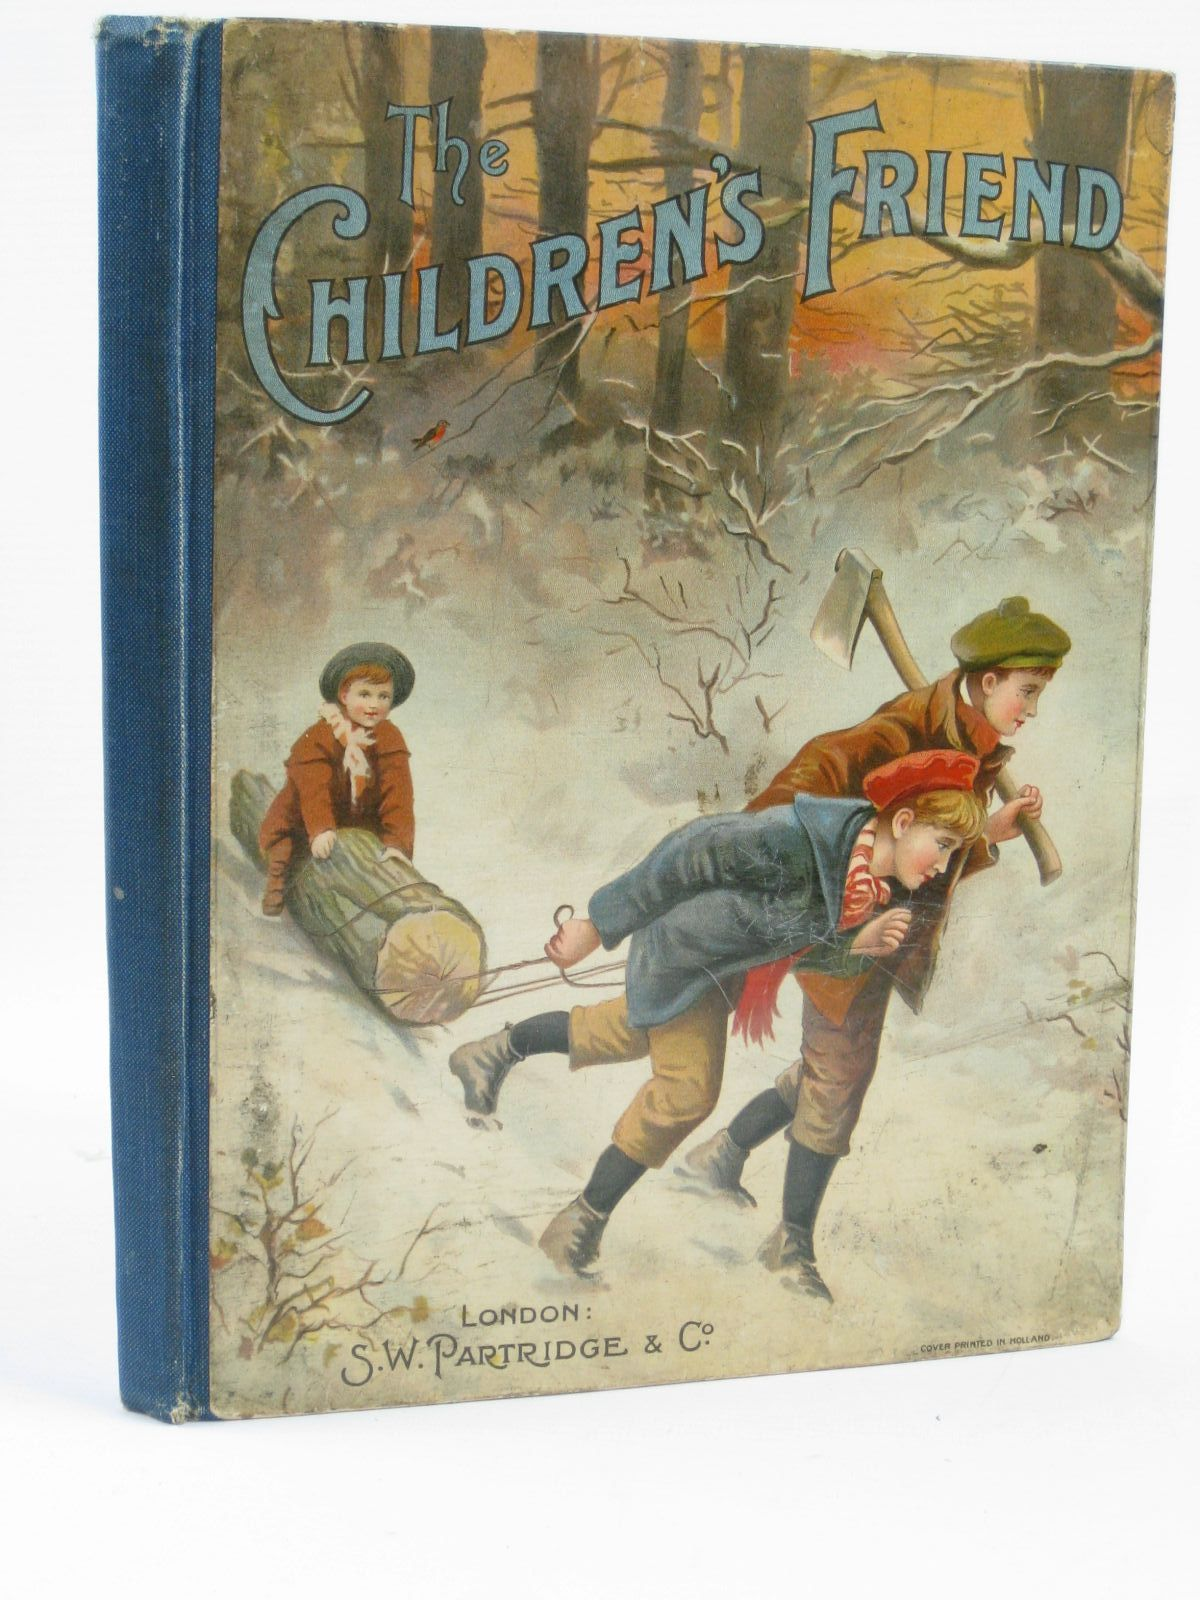 Photo of THE CHILDREN'S FRIEND VOLUME XLVI - 1907 written by Holderness Gale, F. Brown, J. Howard Stooke, Eleanora H. et al, illustrated by Wain, Louis Macgregor, Angusine Roberts, Katharine M. et al., published by S.W. Partridge & Co. (STOCK CODE: 1506904)  for sale by Stella & Rose's Books